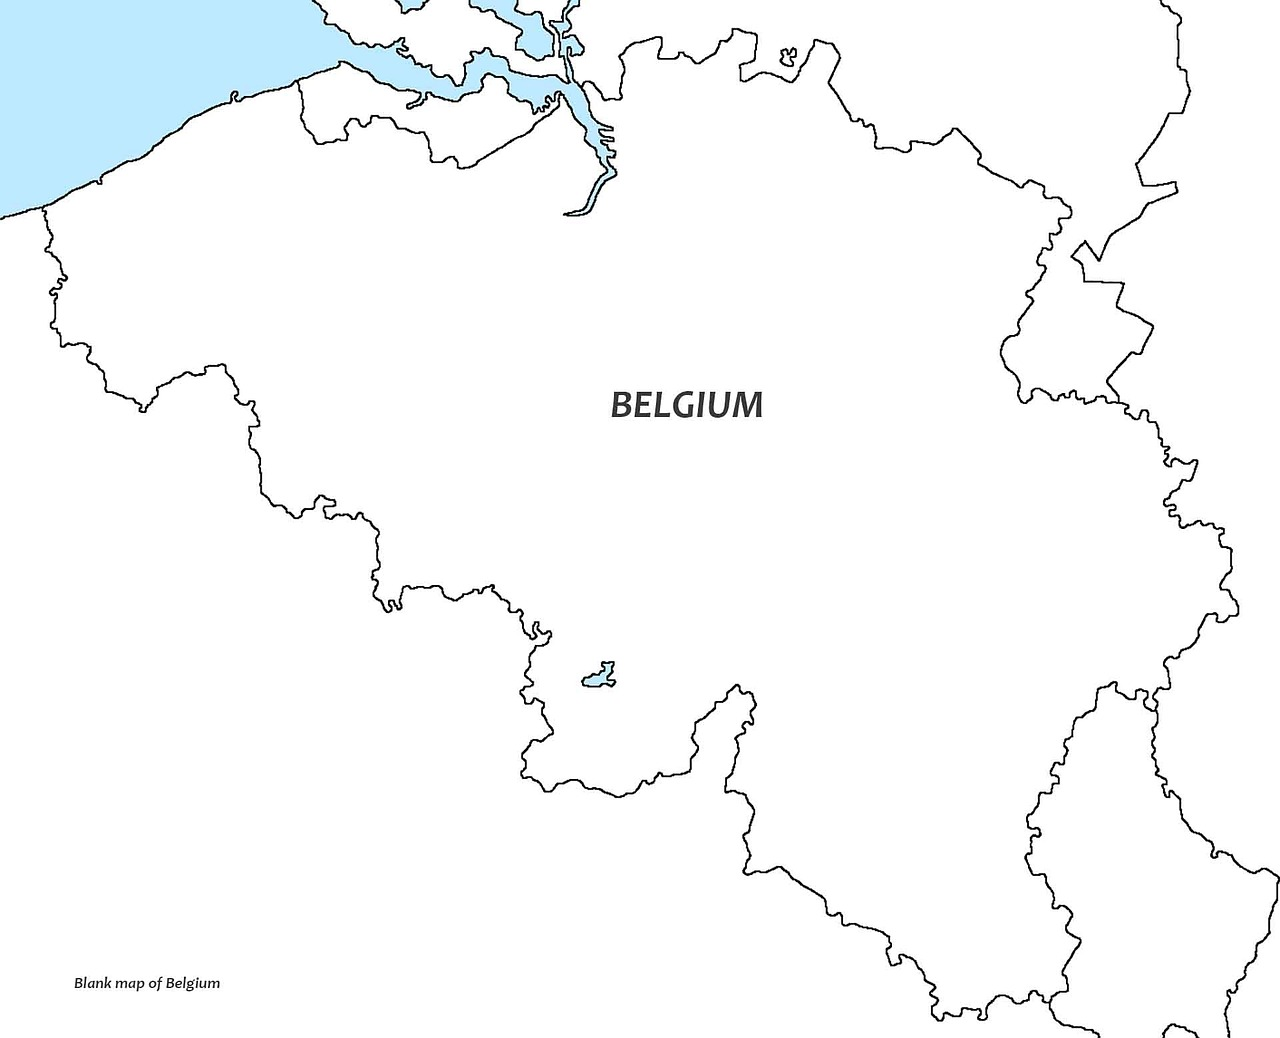 Picture of: Belgium White Map Blank Free Image On Pixabay